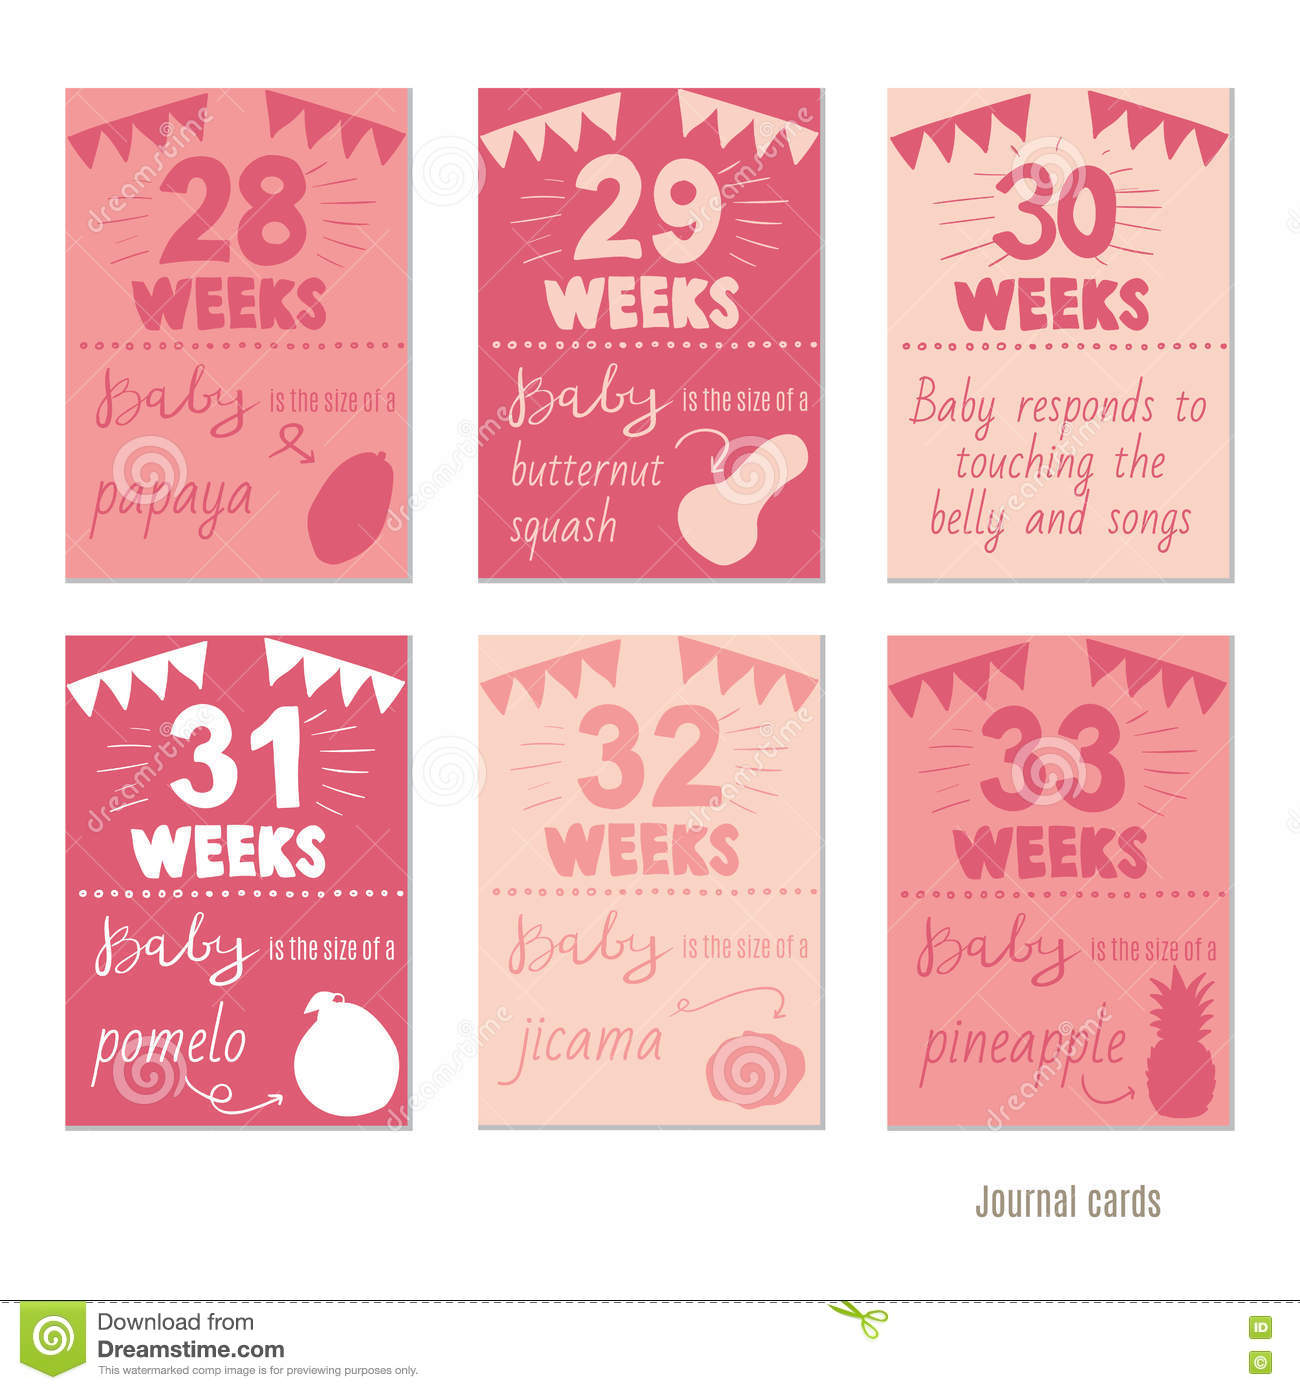 Pregnancy 28 33 weeks vector design templates for journal cards royalty free vector download pregnancy 28 33 weeks vector design templates for journal pronofoot35fo Gallery